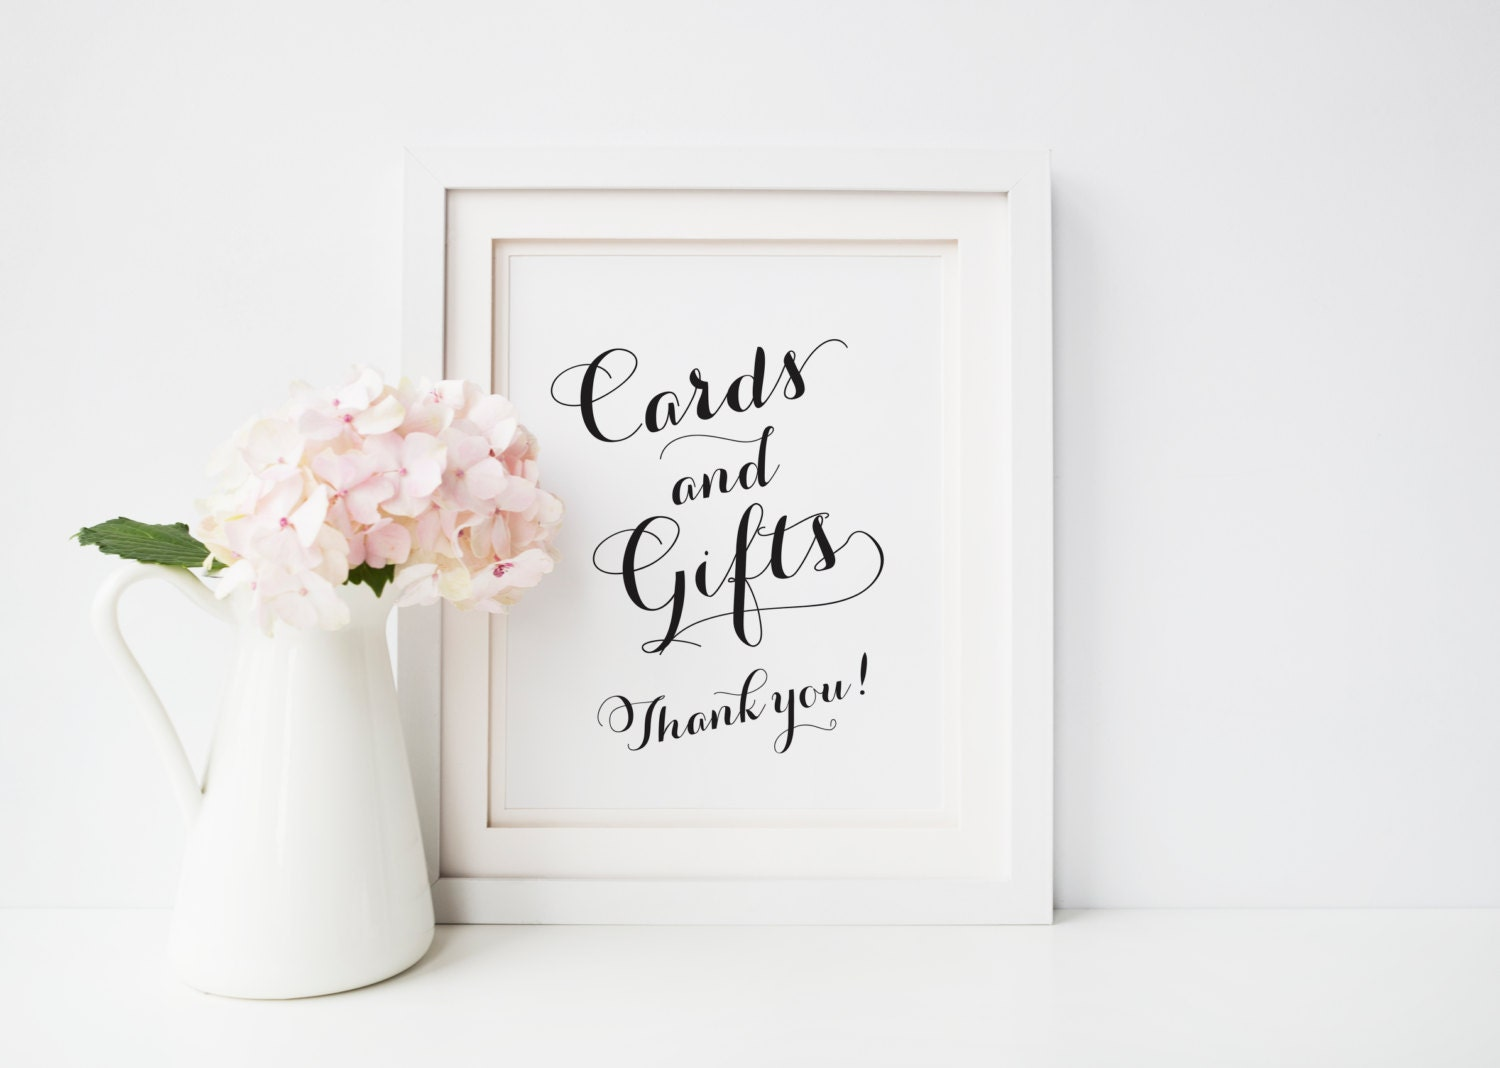 cards and gifts sign printable wedding gift table sign 8x10